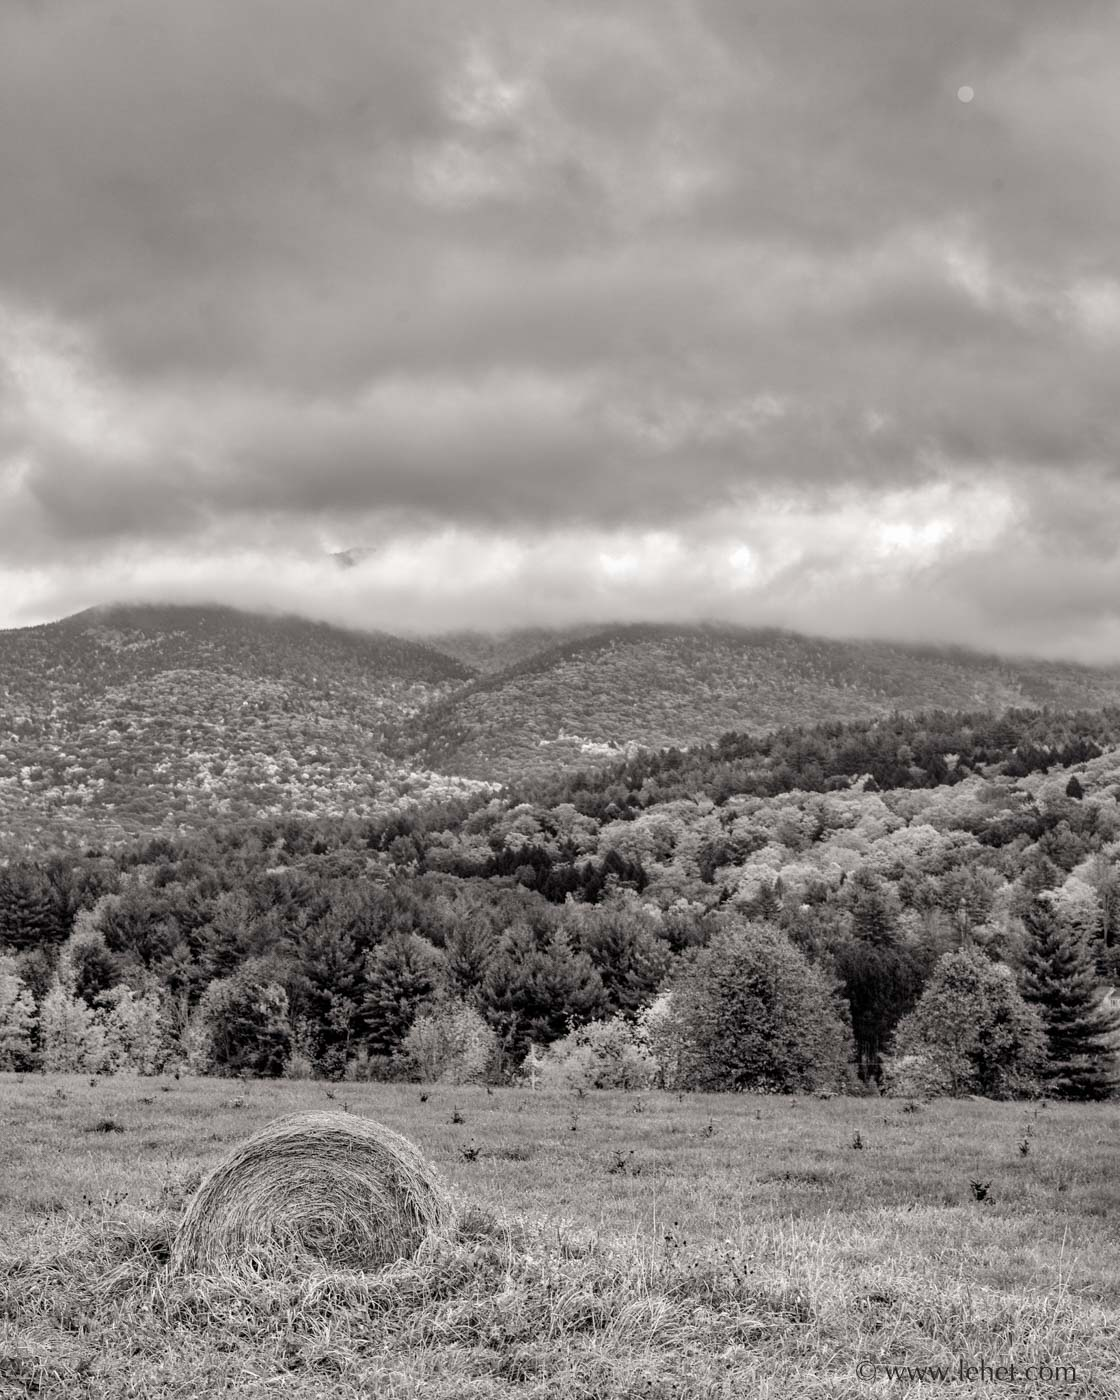 Single Round Hay Bale Mount Ascutney, Clouds, Vermont, Black and White